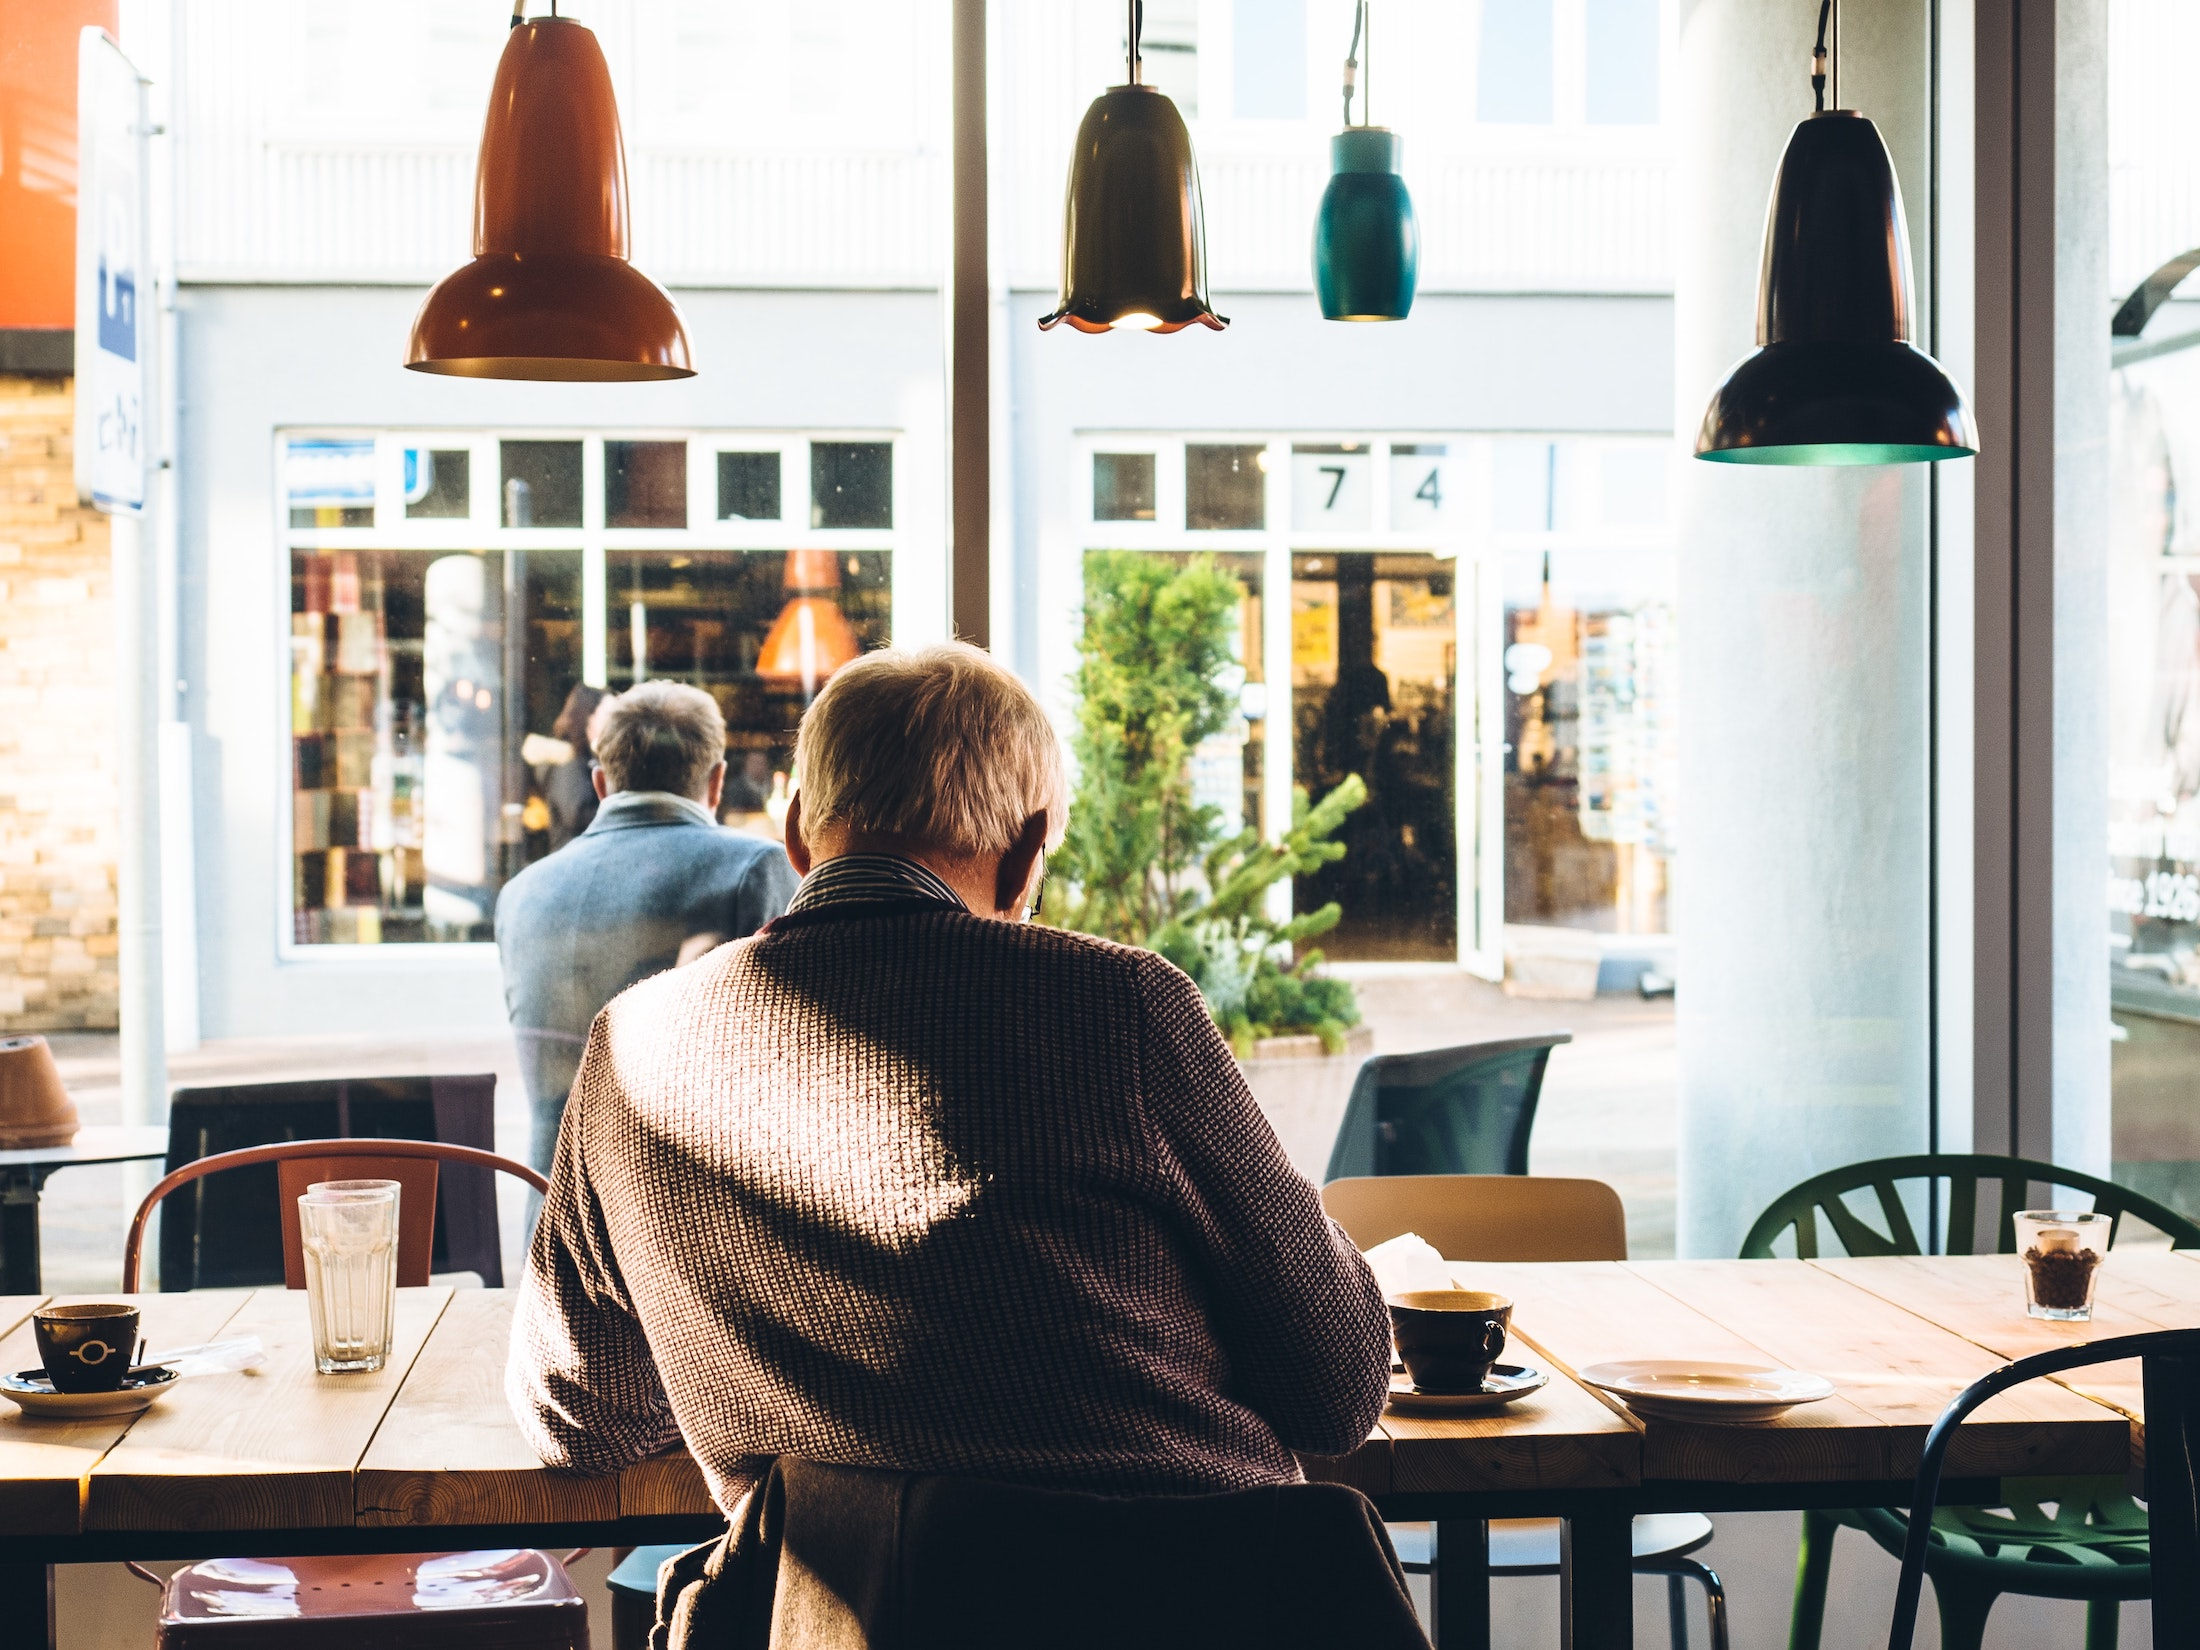 Person sitting at a desk in a coffee shop drinking a coffee